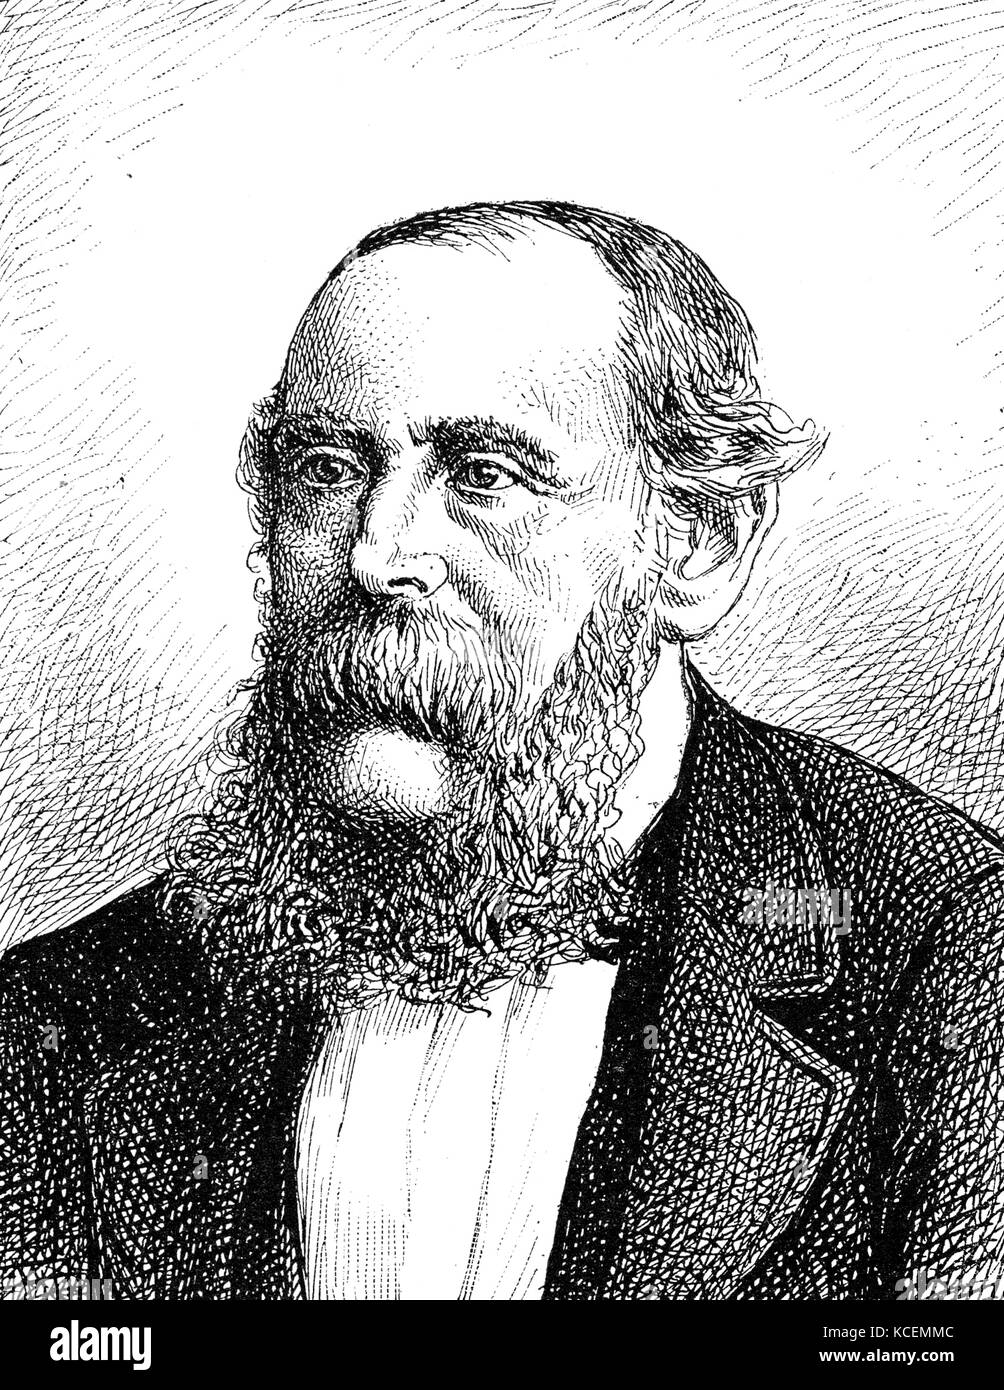 Jean Servais Stas (21 August 1813 – 13 December 1891) was a Belgian  analytical chemist that co-discovered the weight of carbon.